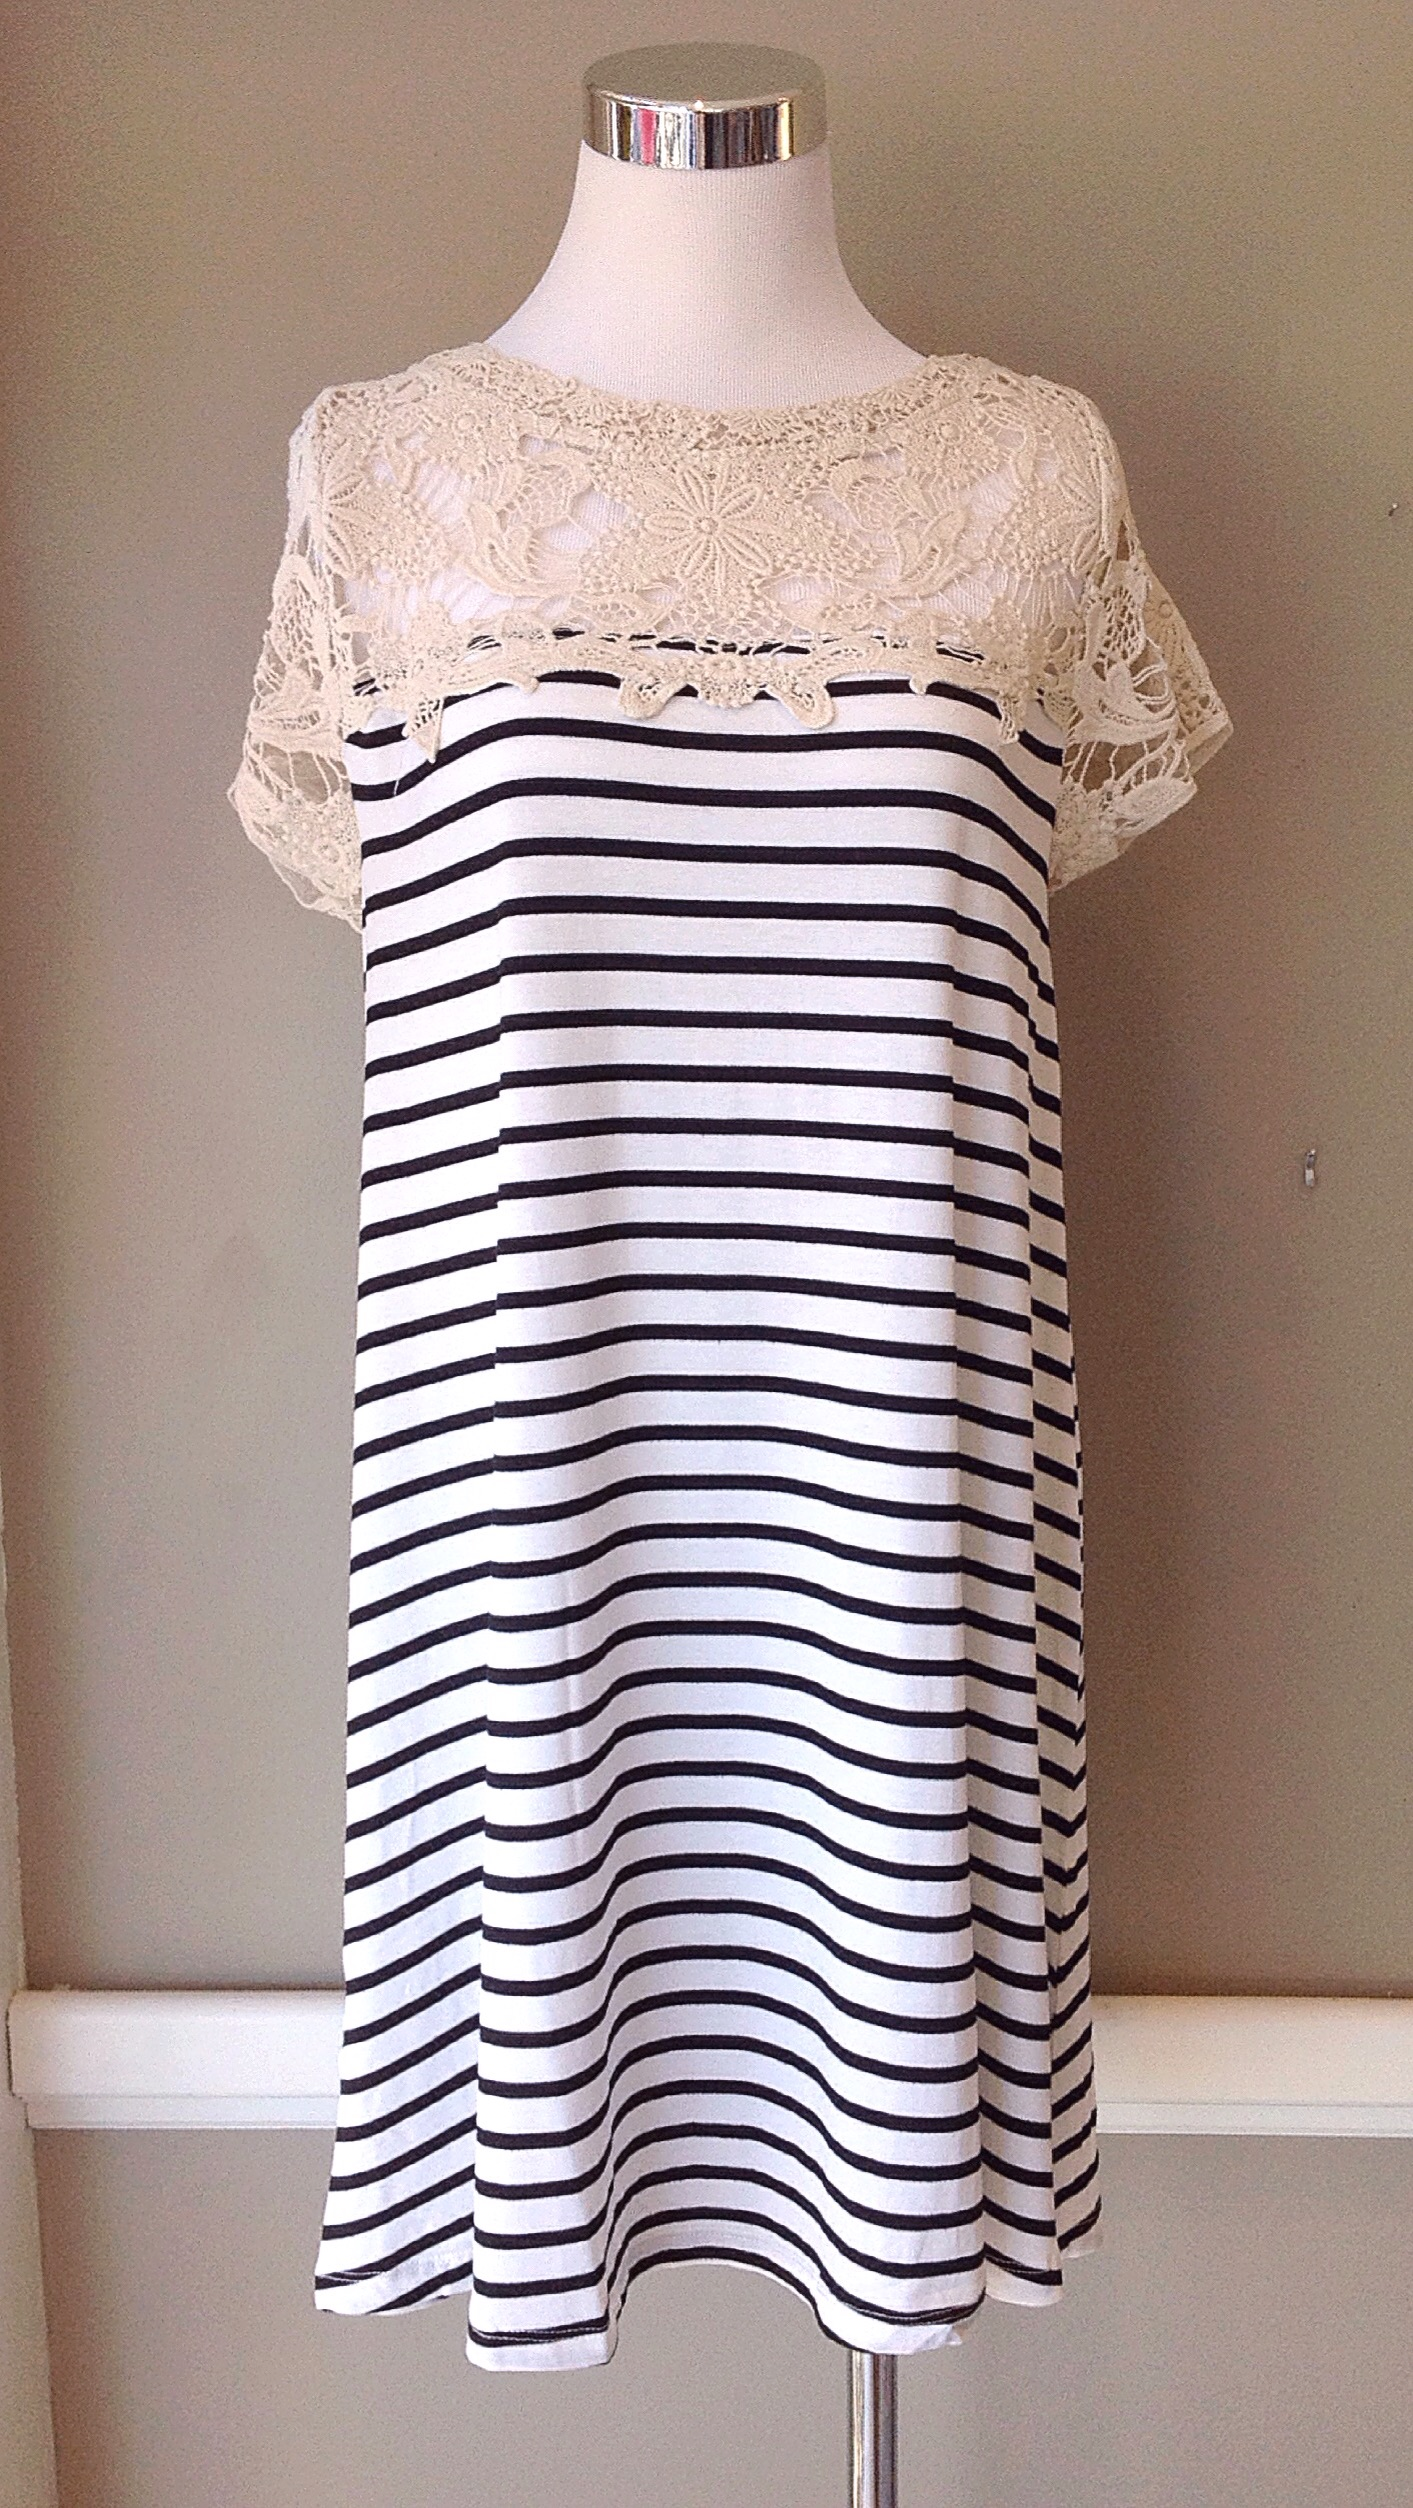 Lace and stripe tunic dress, $38